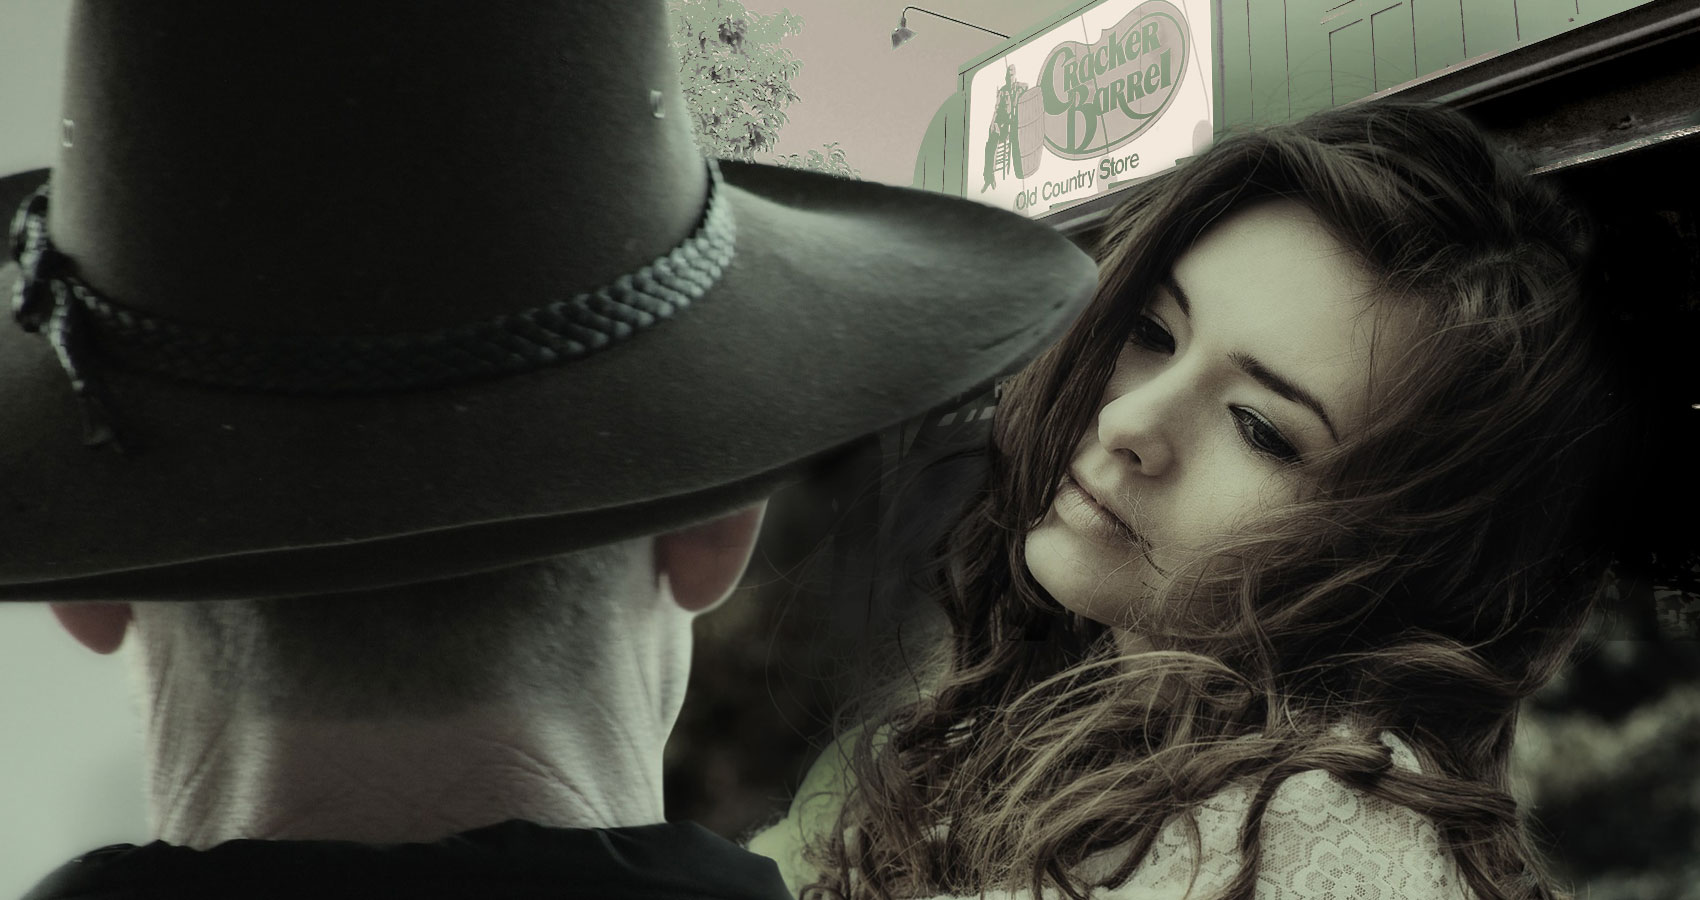 My Forever Love, a short story written by Tylia Flores at Spillwords.com